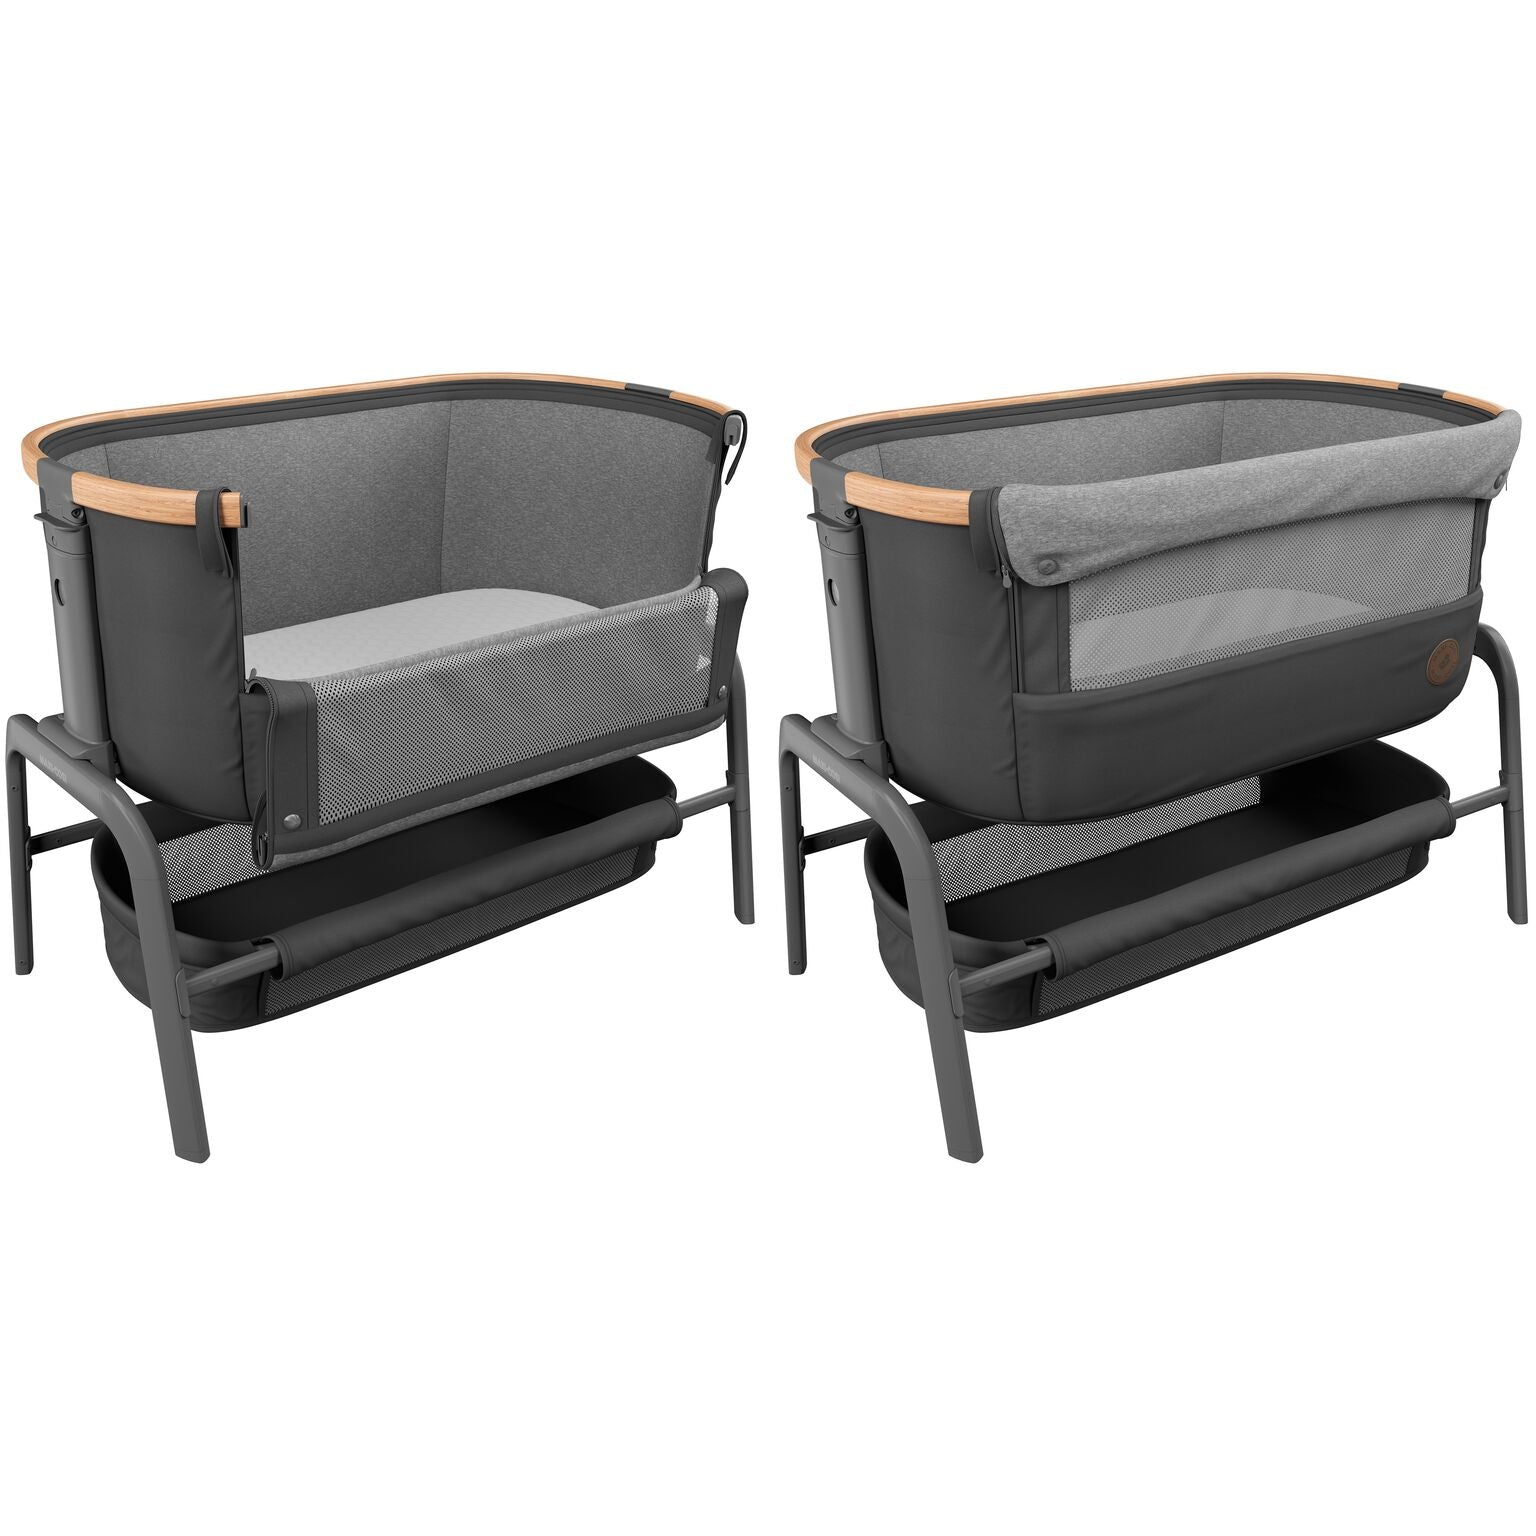 Maxi-Cosi Iora bedside sleeper Next to me Crib graphite